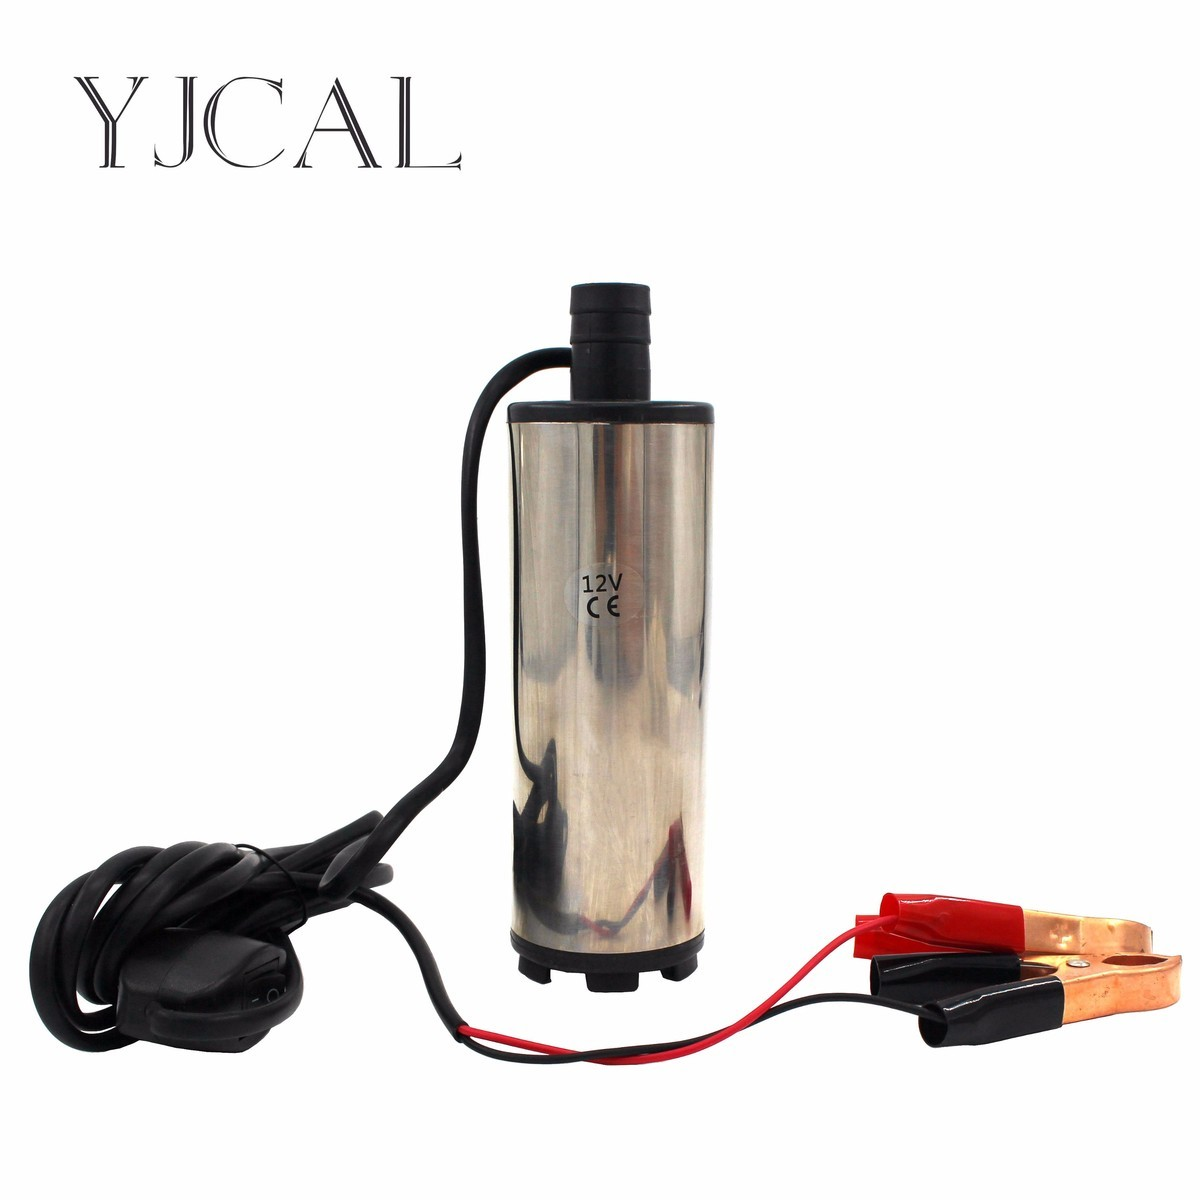 Car Electric Submersible Pump Diameter 51MM DC 12V 24V Motor Suction Oil Water Disel Pump Stainless Steel